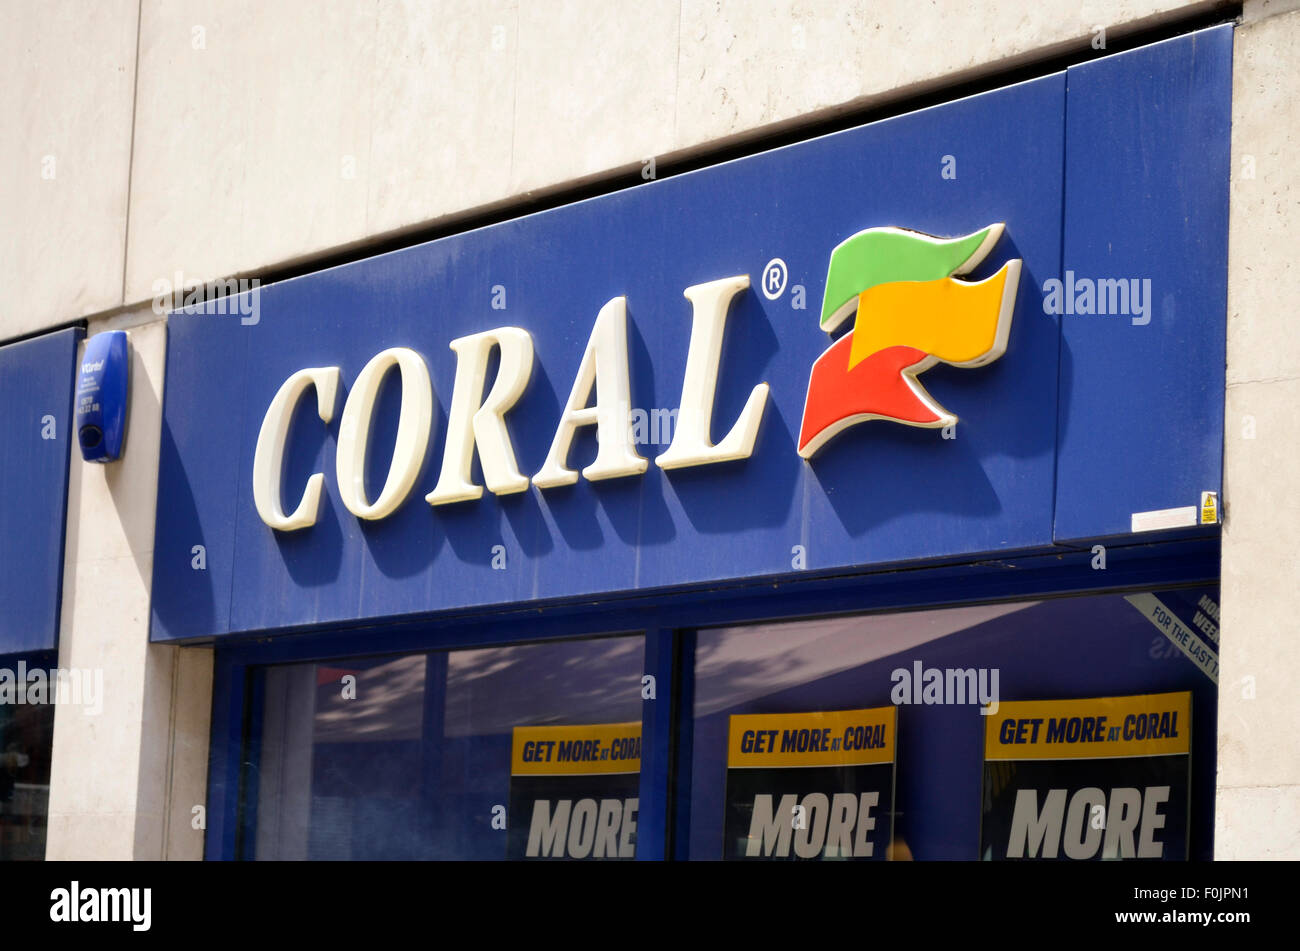 Coral shop front - Stock Image